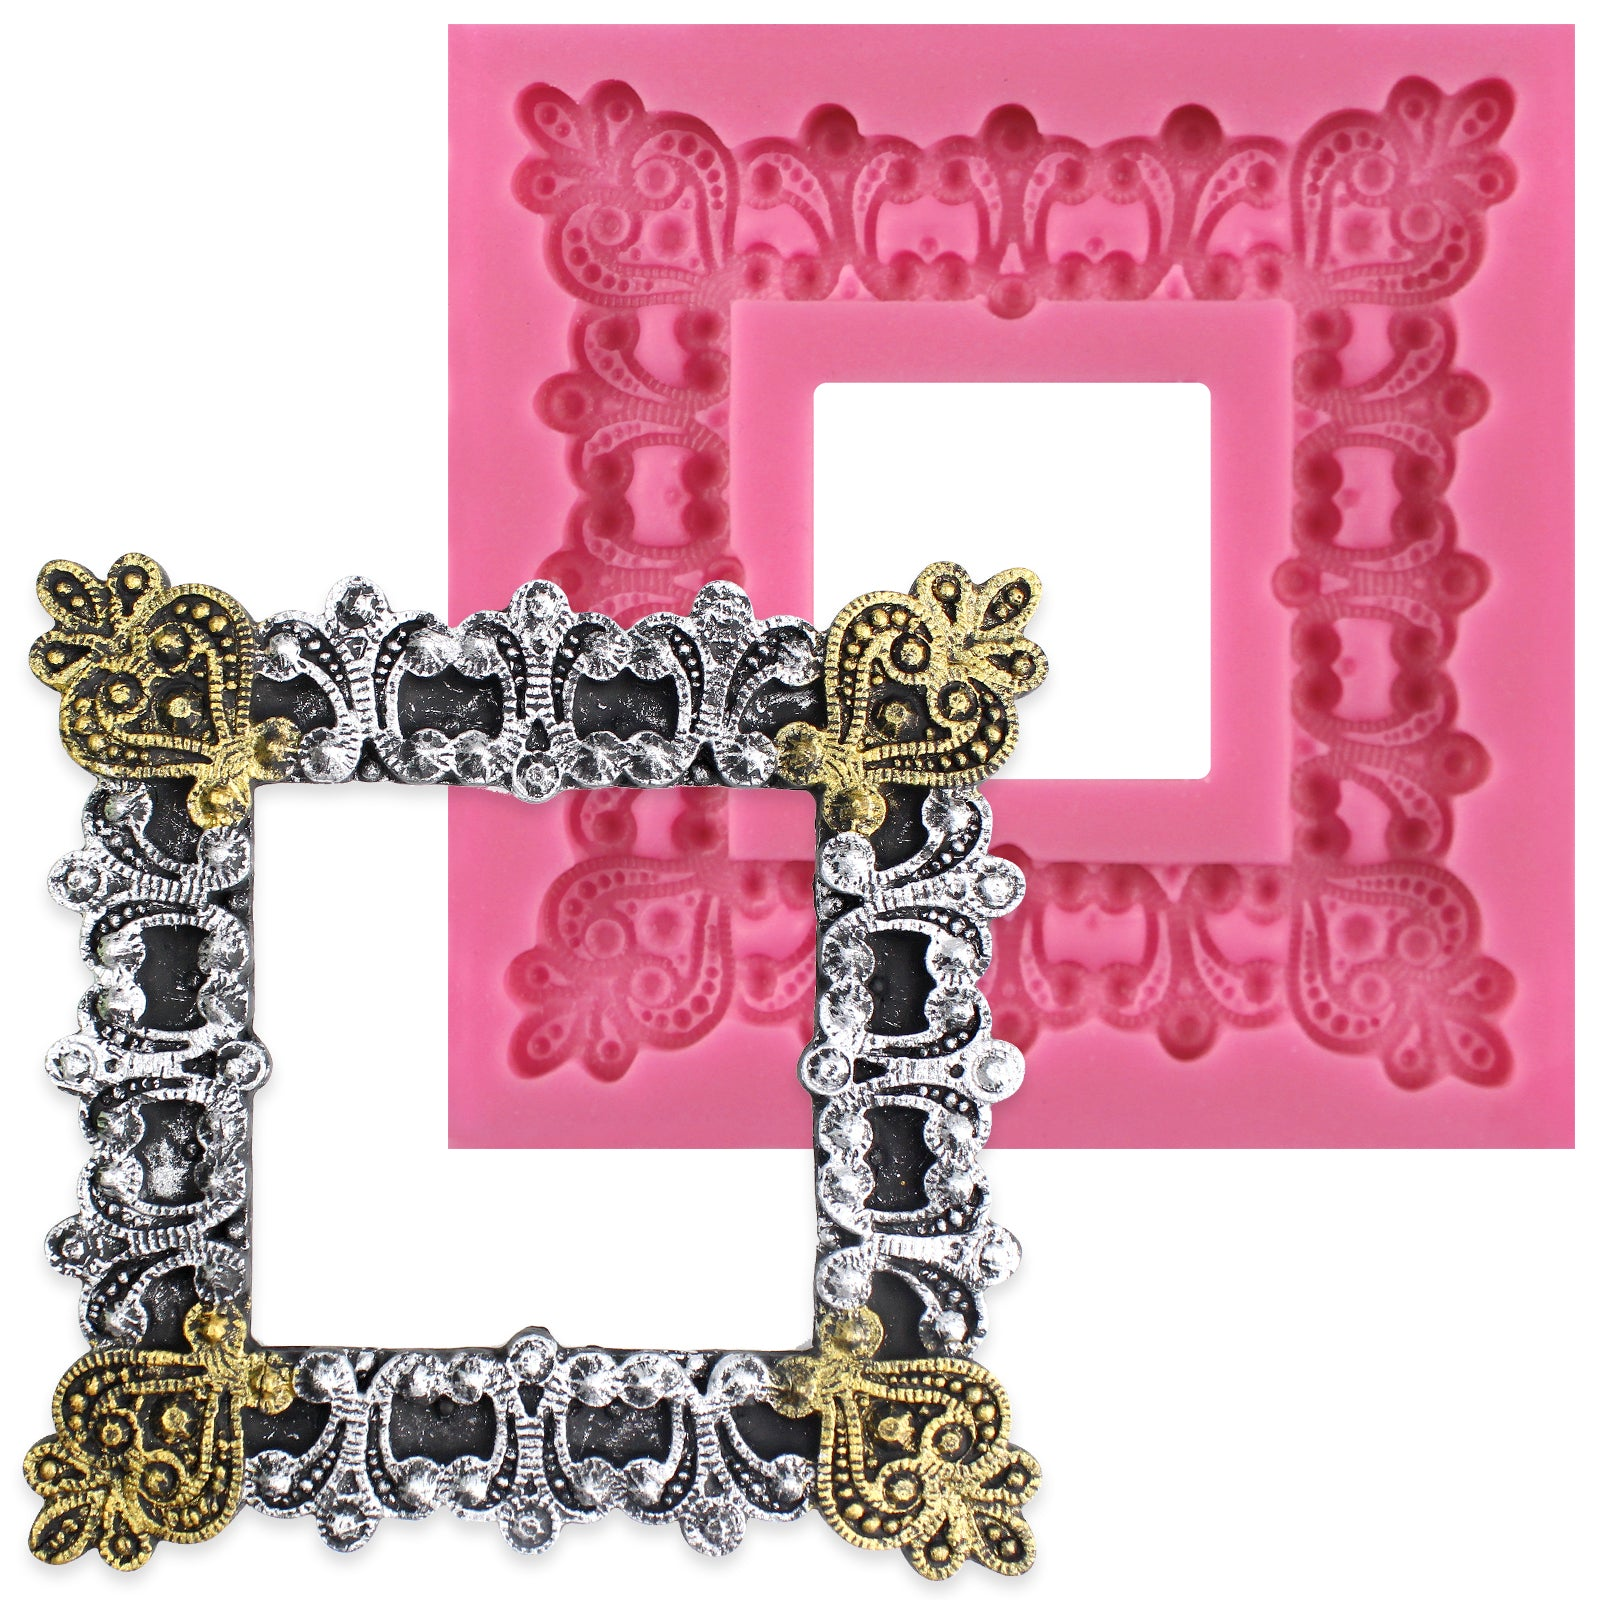 3-inch Vintage Square Frame Silicone Mold